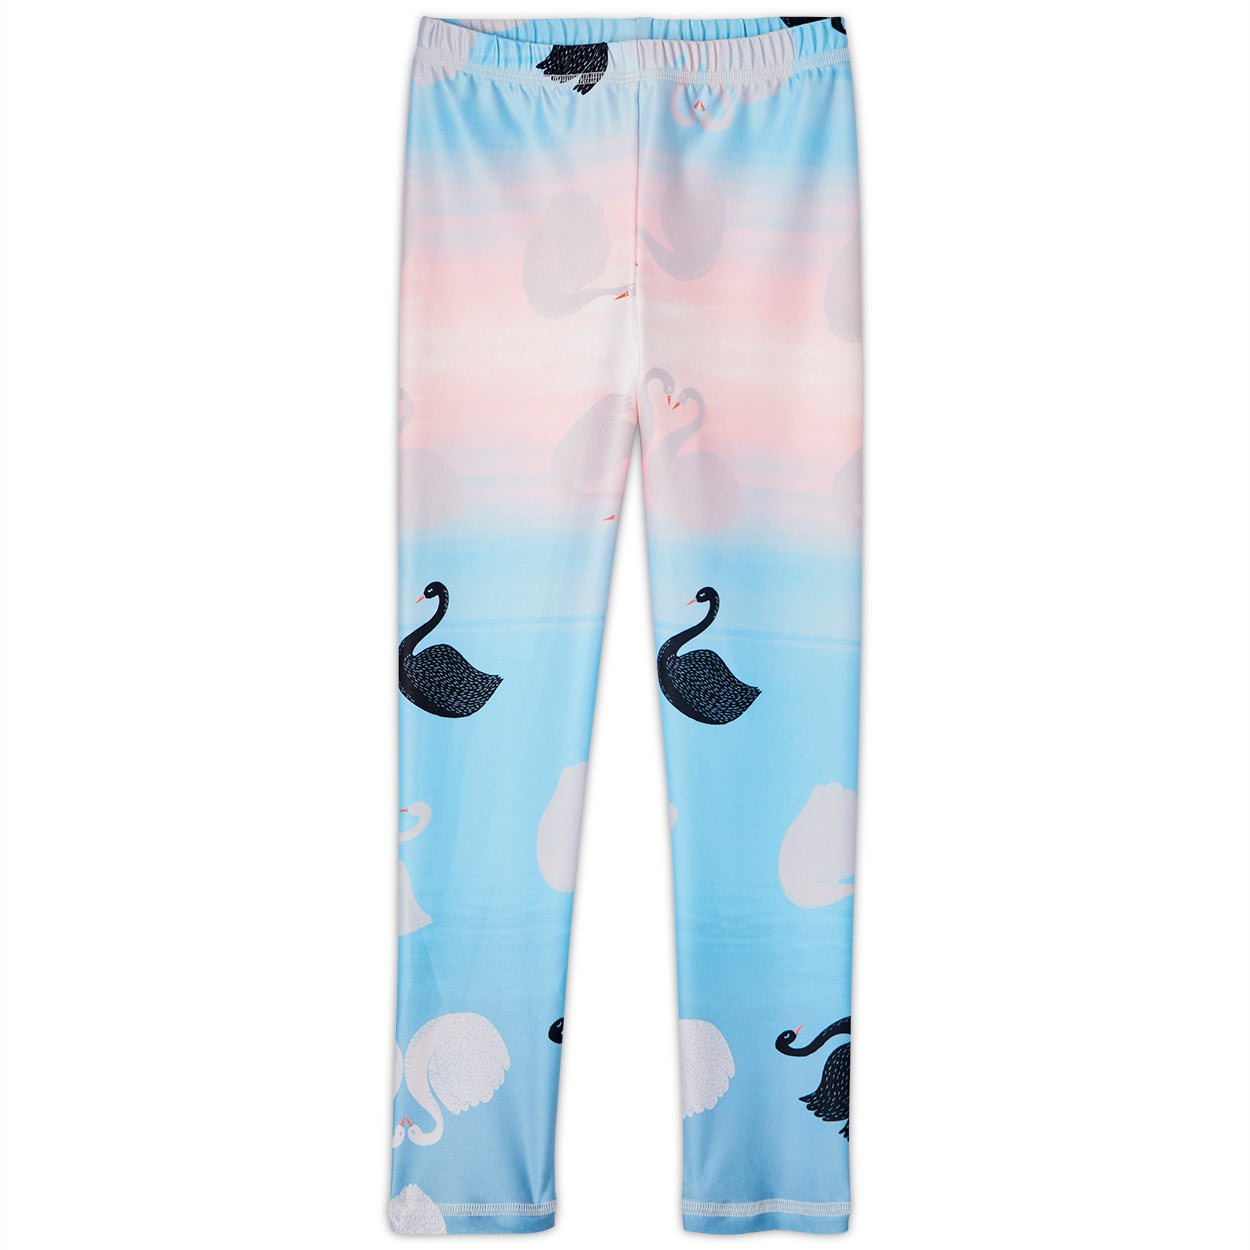 Swans Sunblocker Leggings UPF 50+